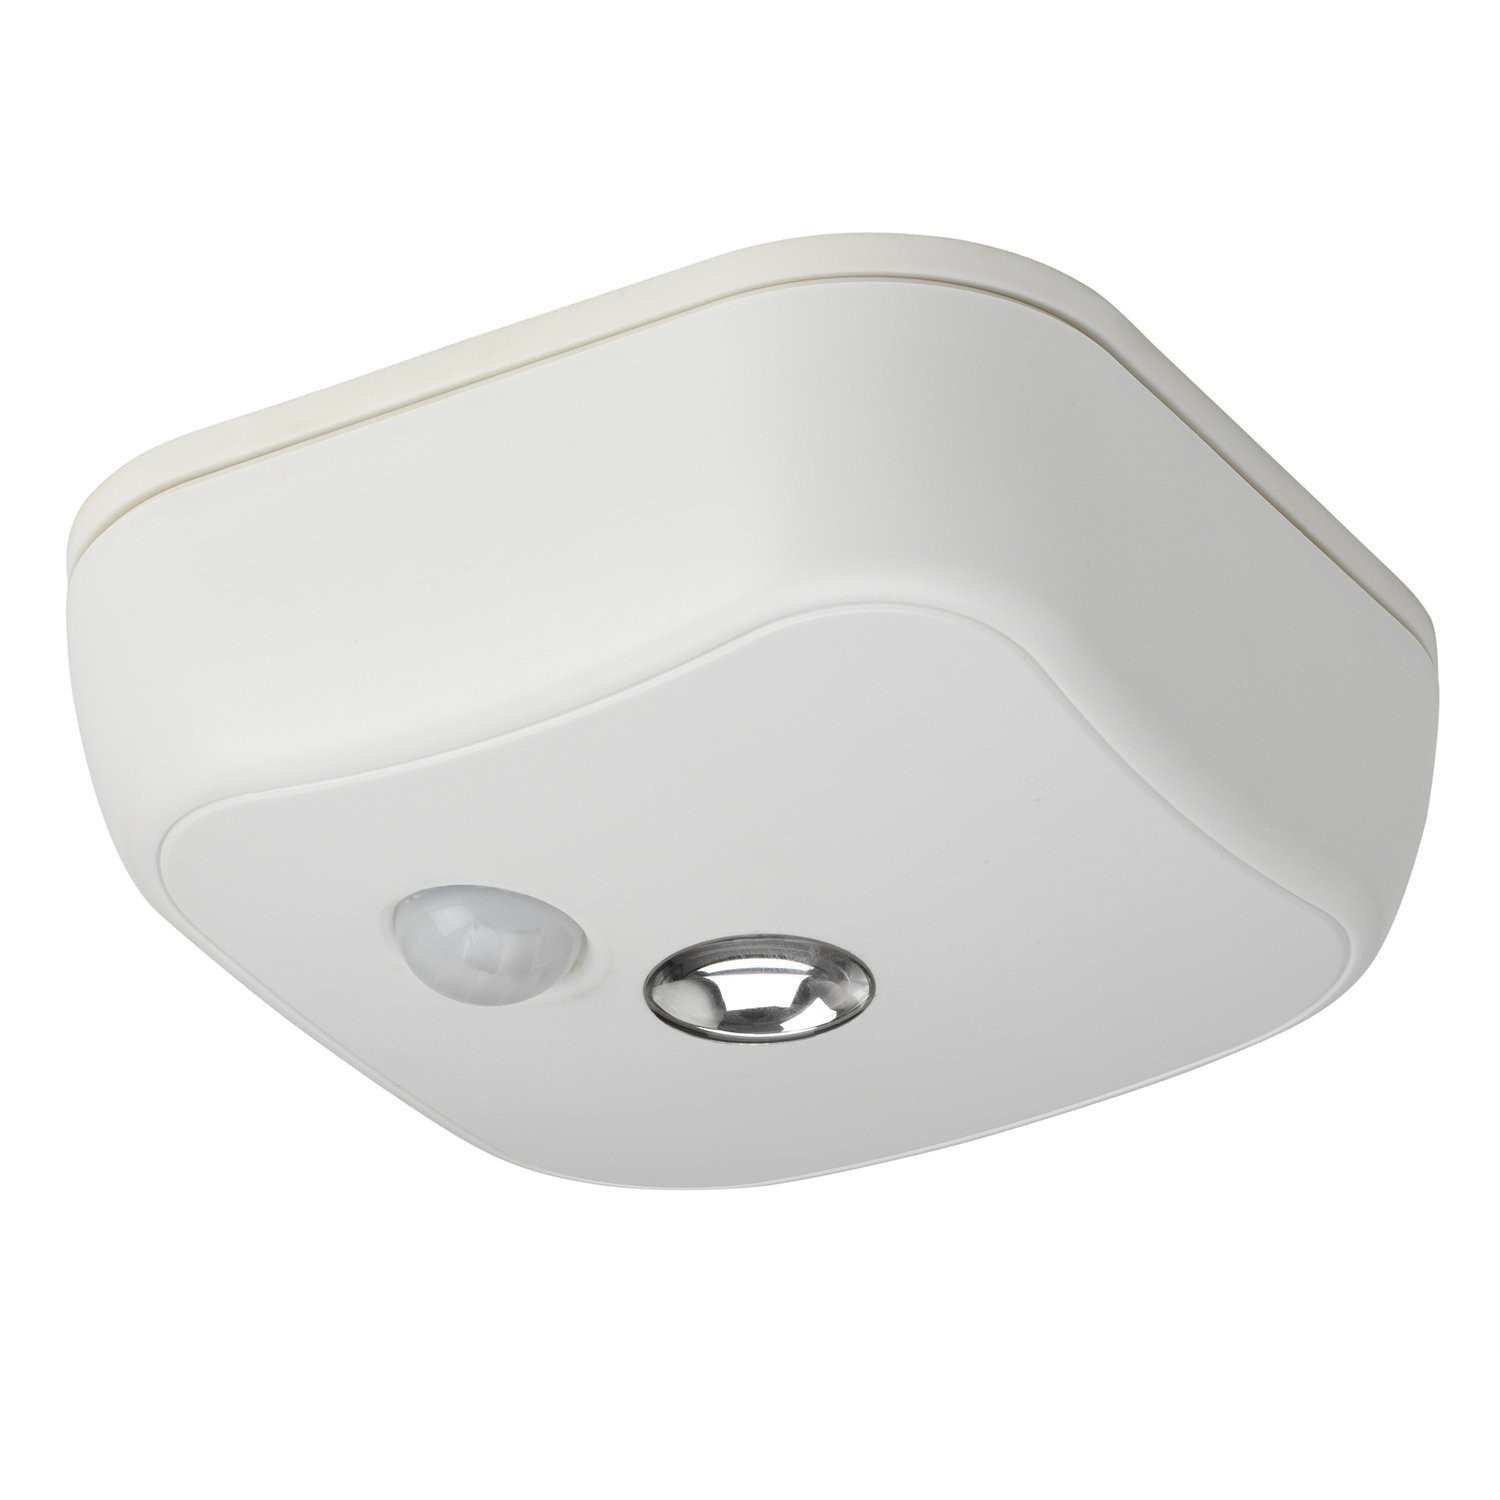 Kitchen Ceiling Led Lighting Auraglow Wireless Pir Motion Sensor Led Ceiling Light Auraglow